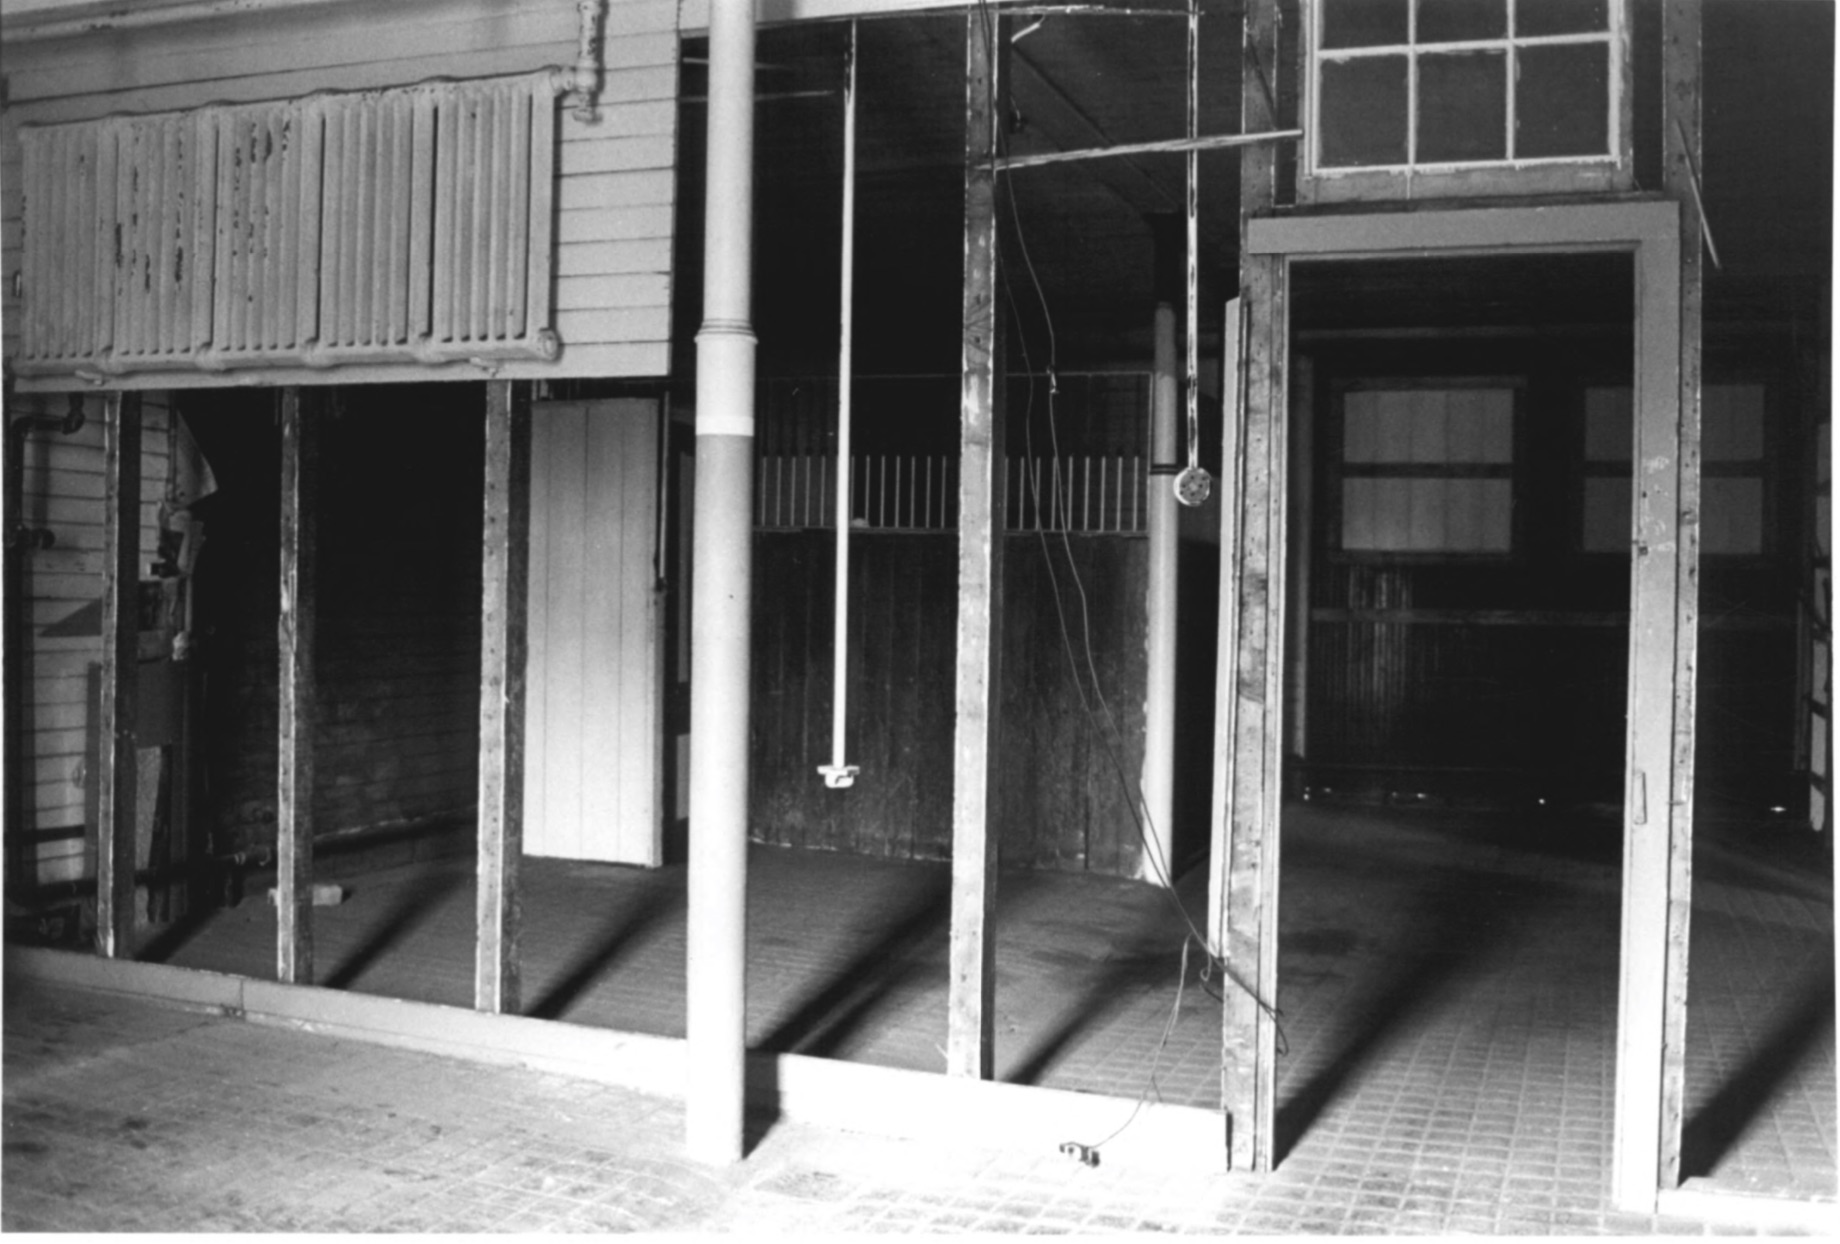 The Horse Stalls within the CJ Starr Barn in 1979 by Steven H. Hirschberg as Recorded on the National Park Service National Register of Historic Places